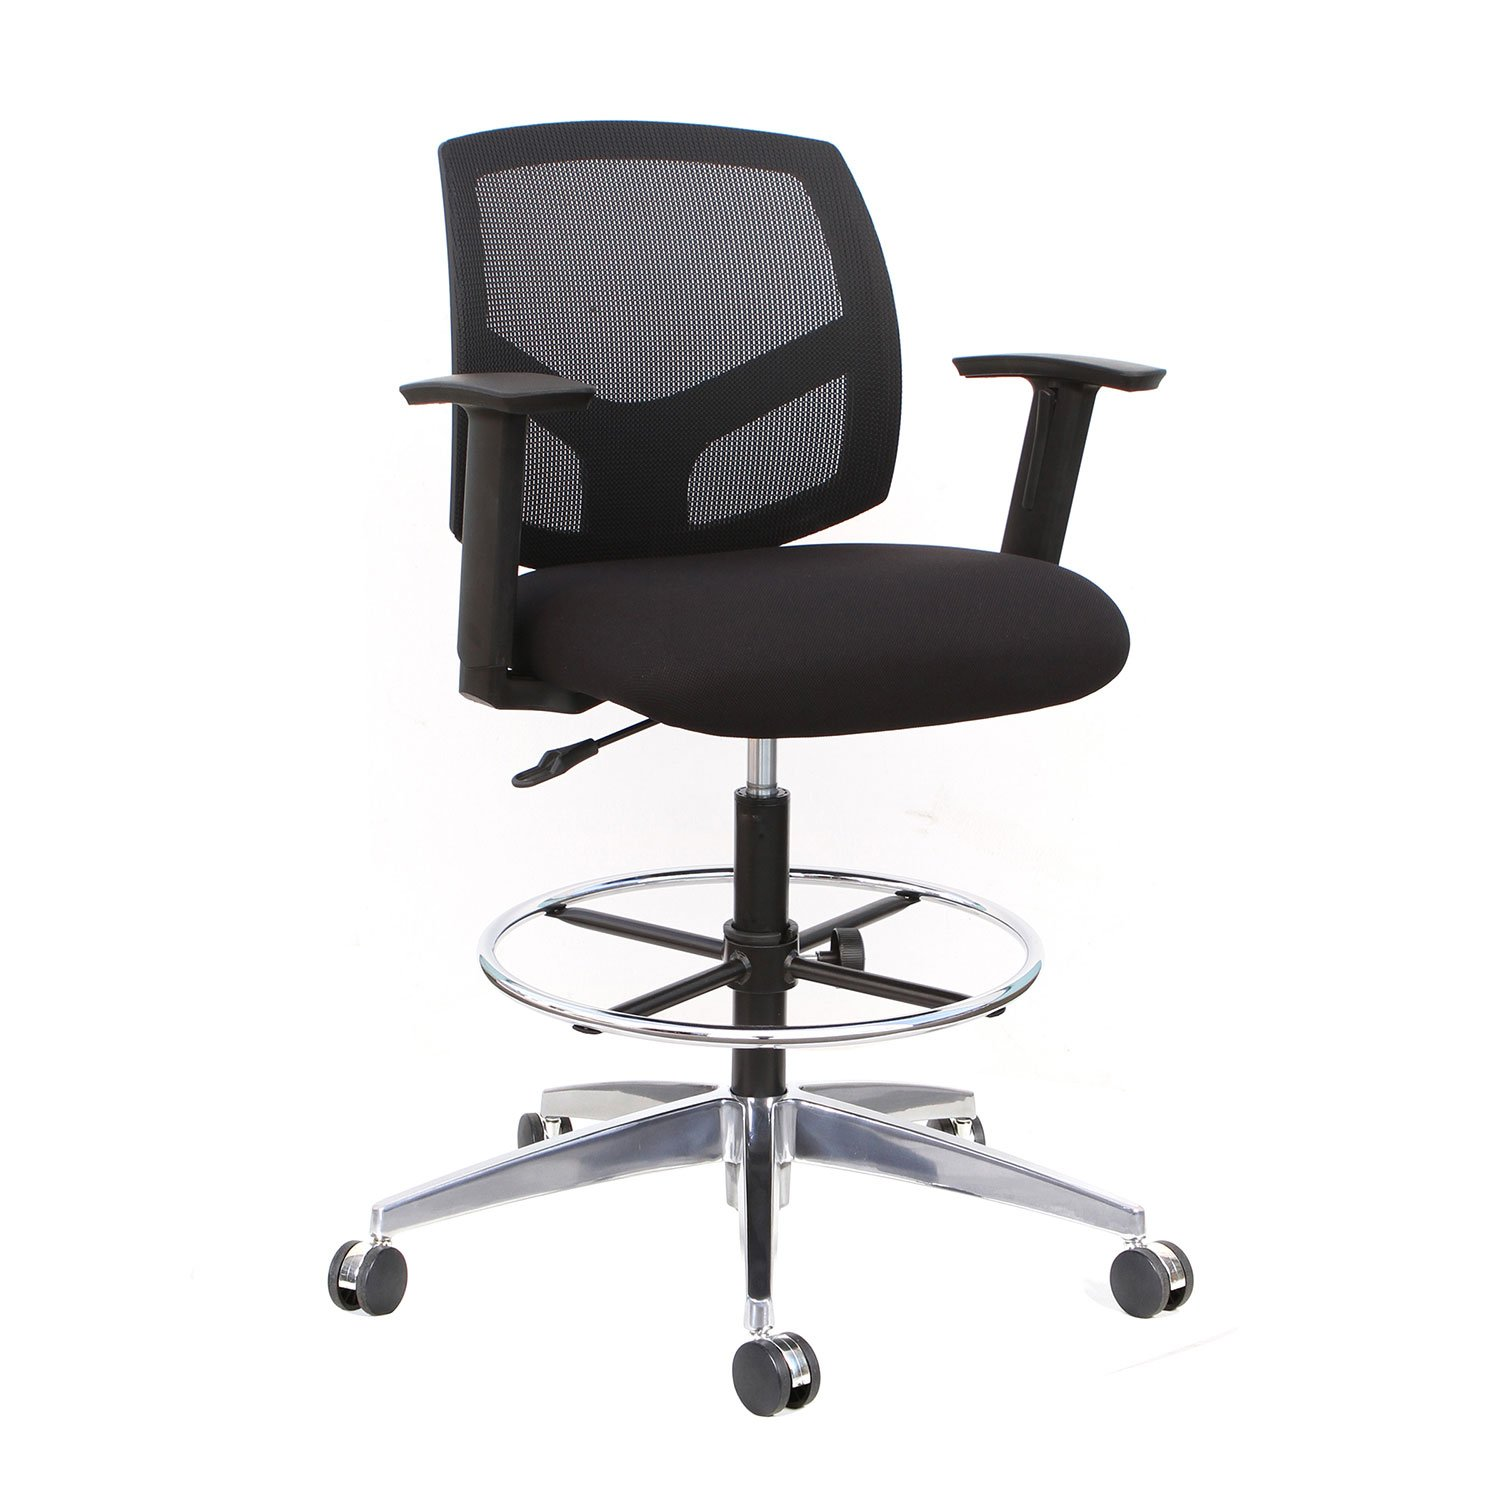 Thorntons Office Supplies Forge Mid-Back Mesh Drafting Chair, Black